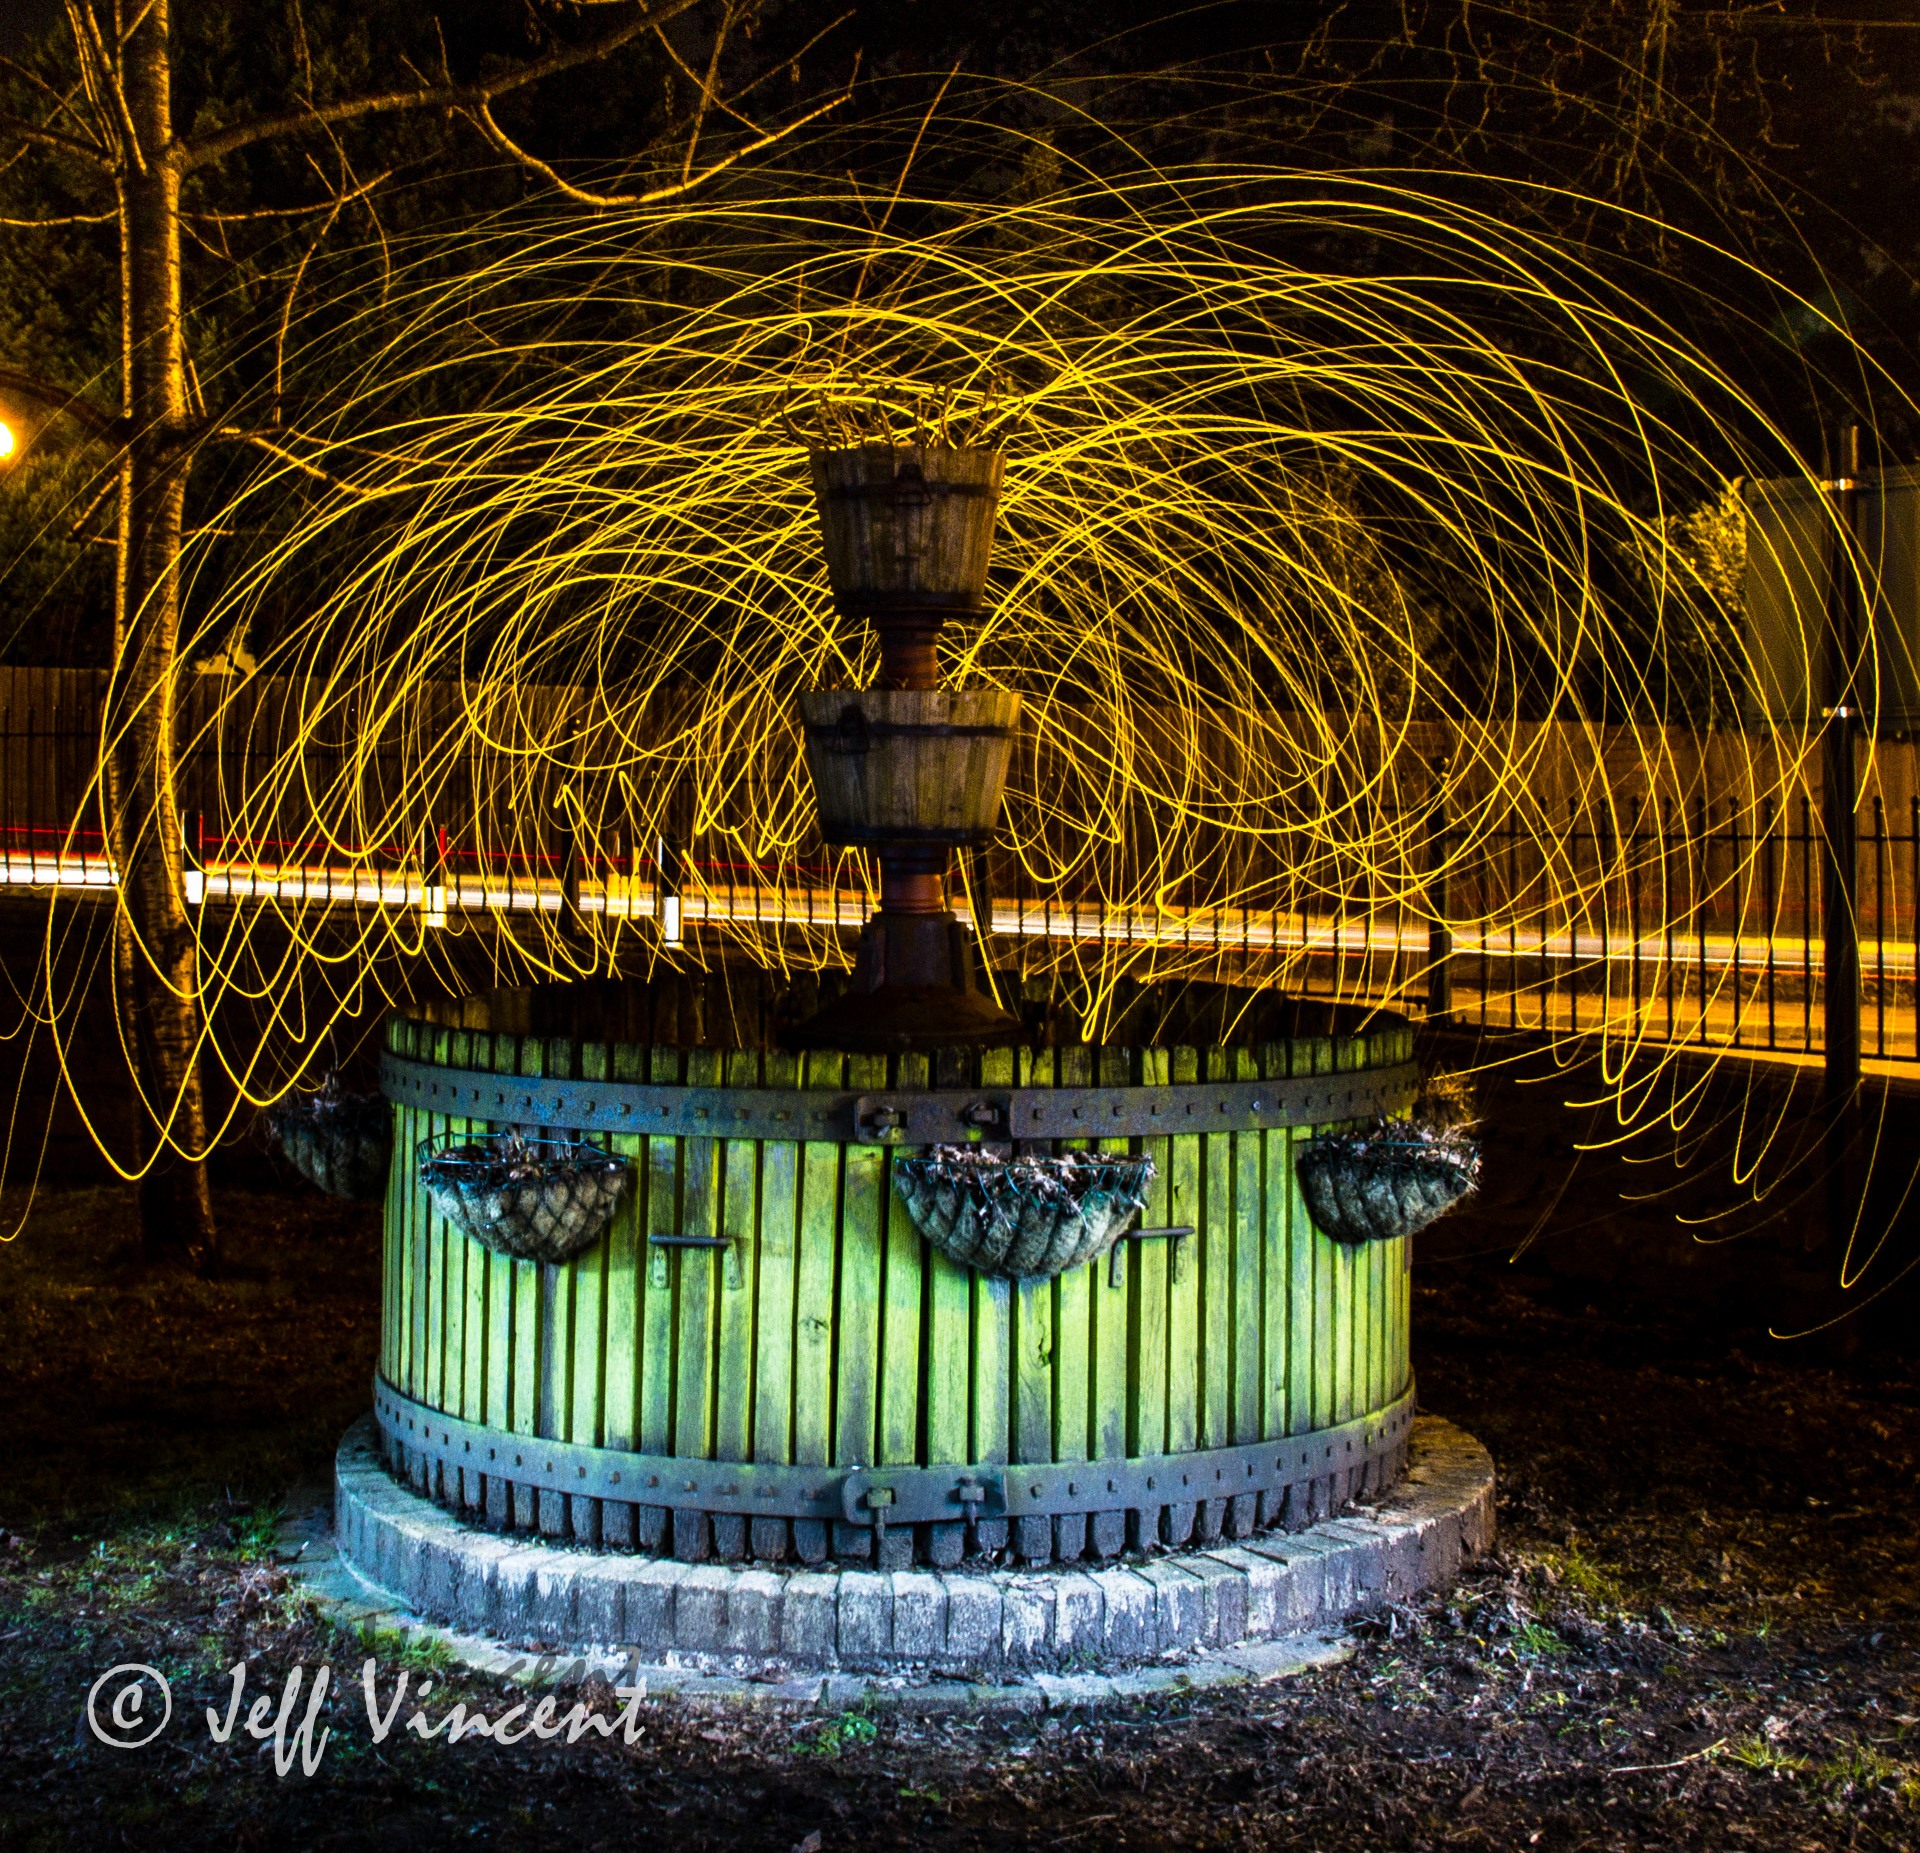 The Fountain of Light